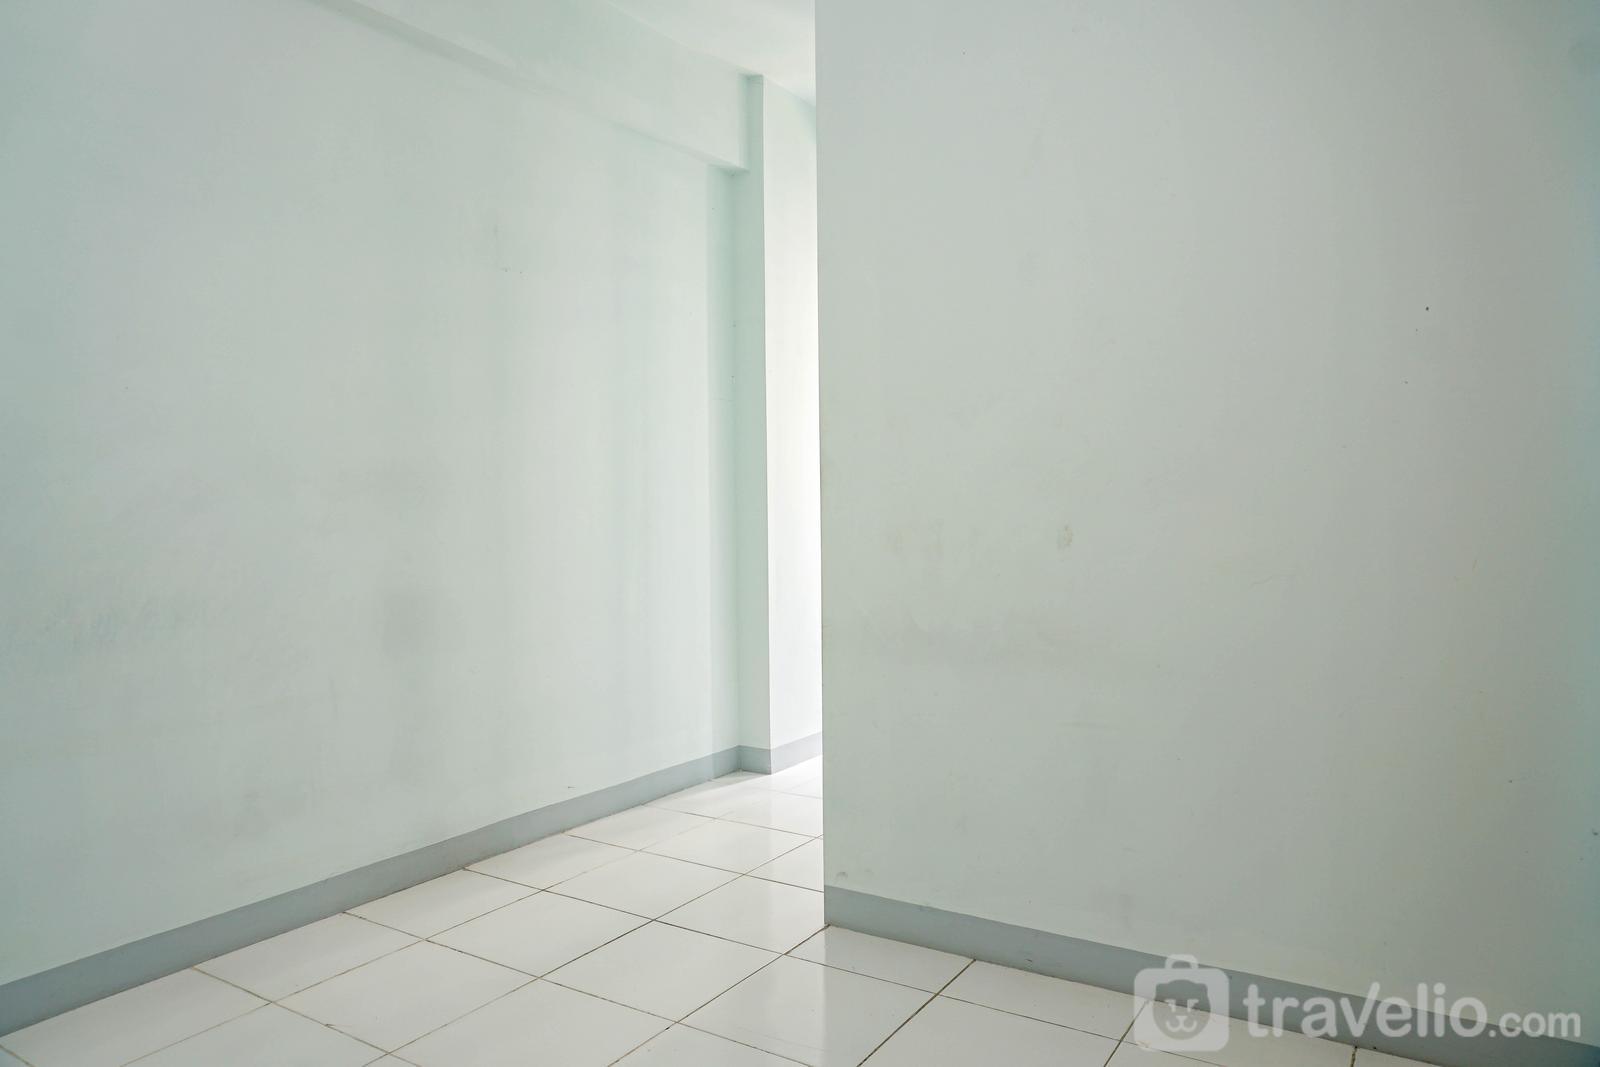 Ayodhya Residence Tangerang - Unfurnished 2BR with AC at Ayodhya Residence Apartment By Travelio